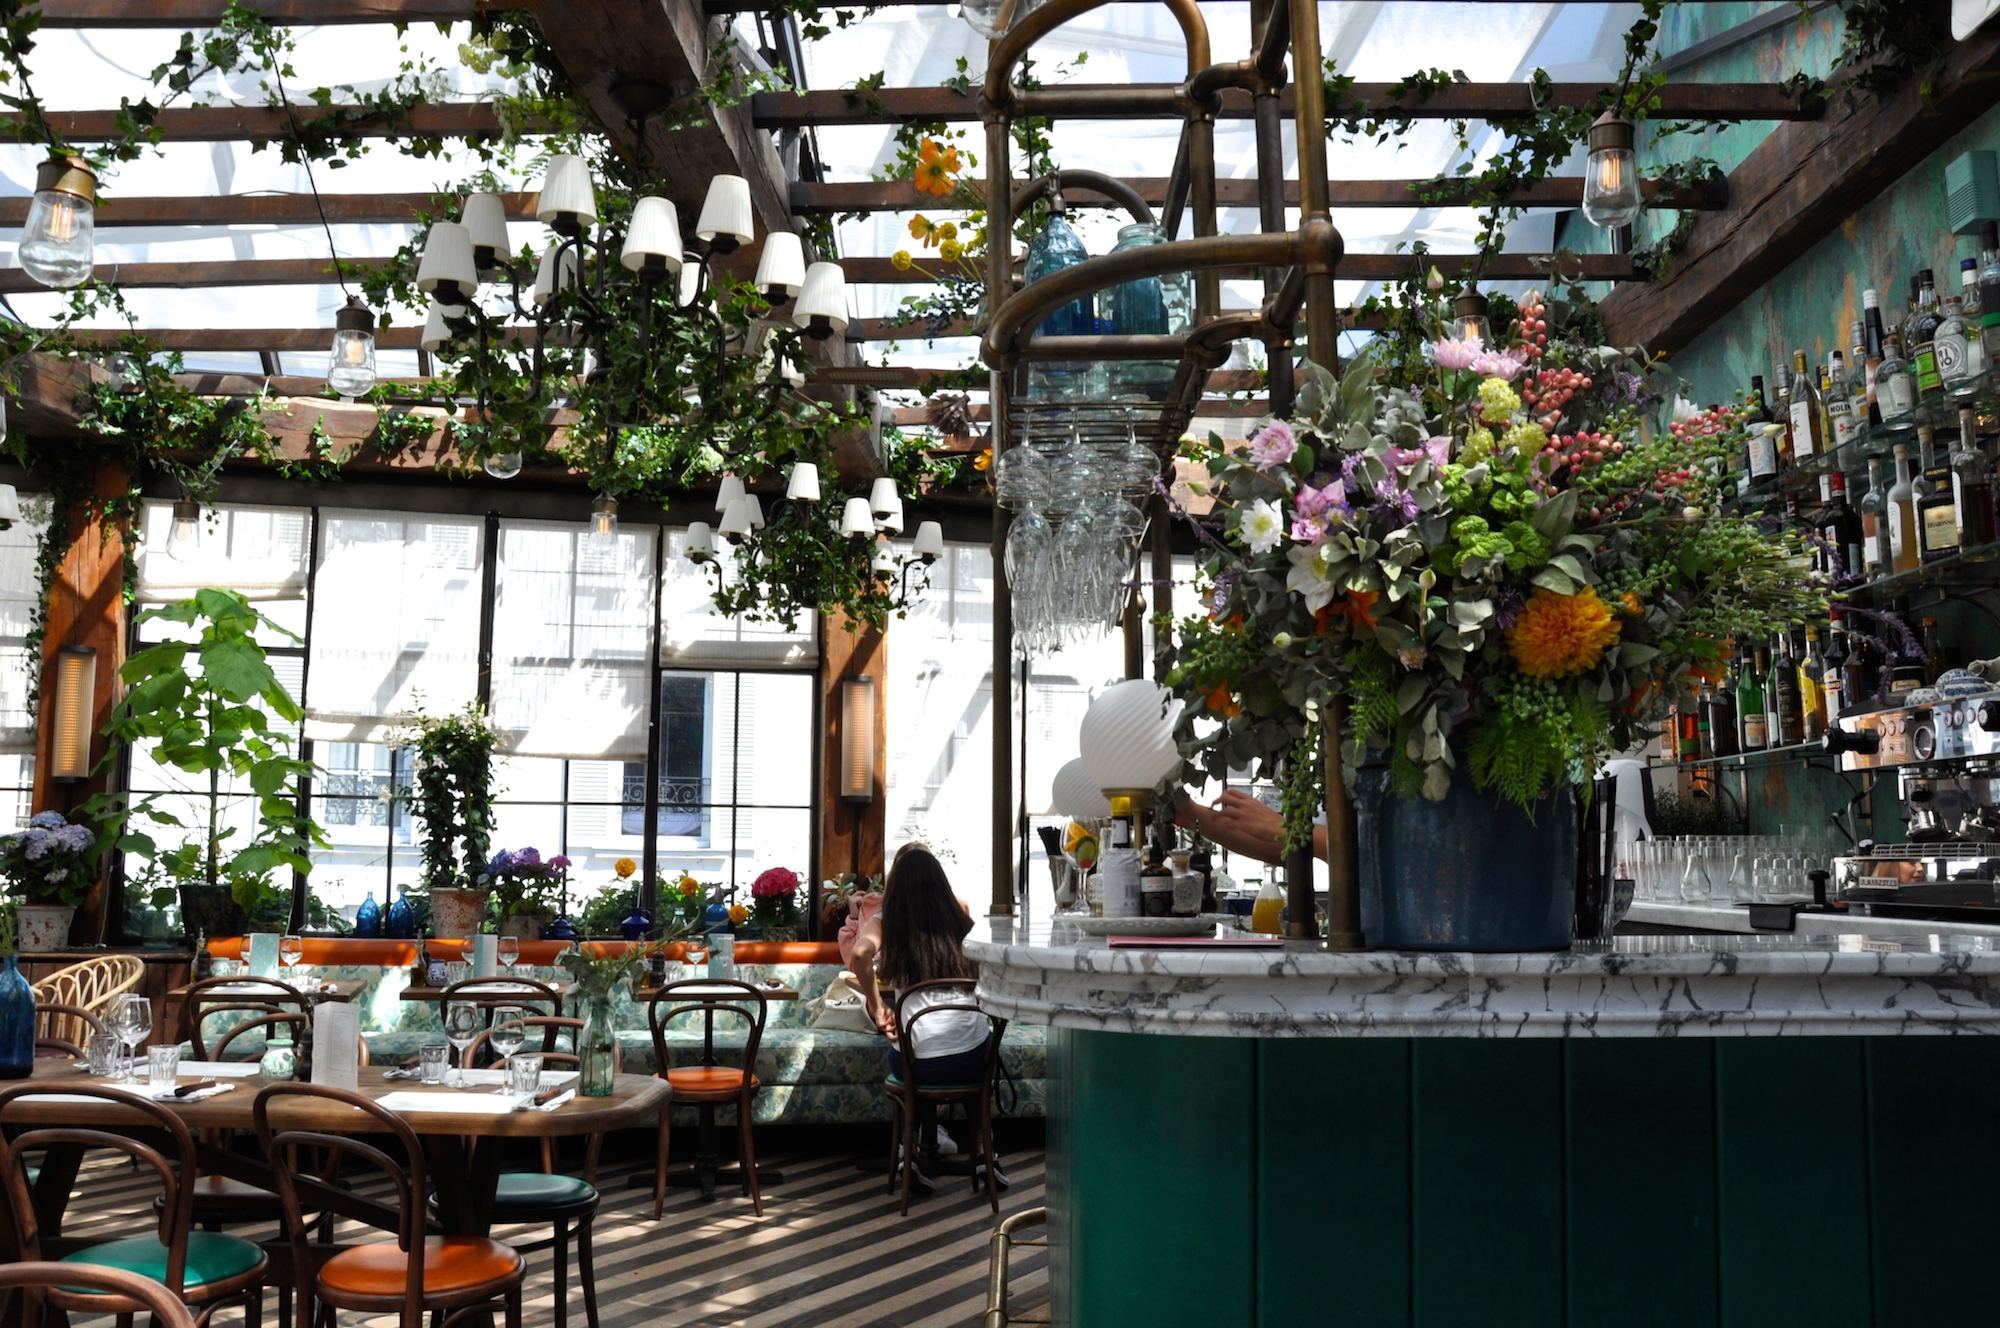 The Big Mamma Group offers Trendy, Fresh, Authentic Italian Dining in Paris in several smart locations like Pink Mamma in South Pigalle which comes with a glass roof and lots of plants and fresh flowers.